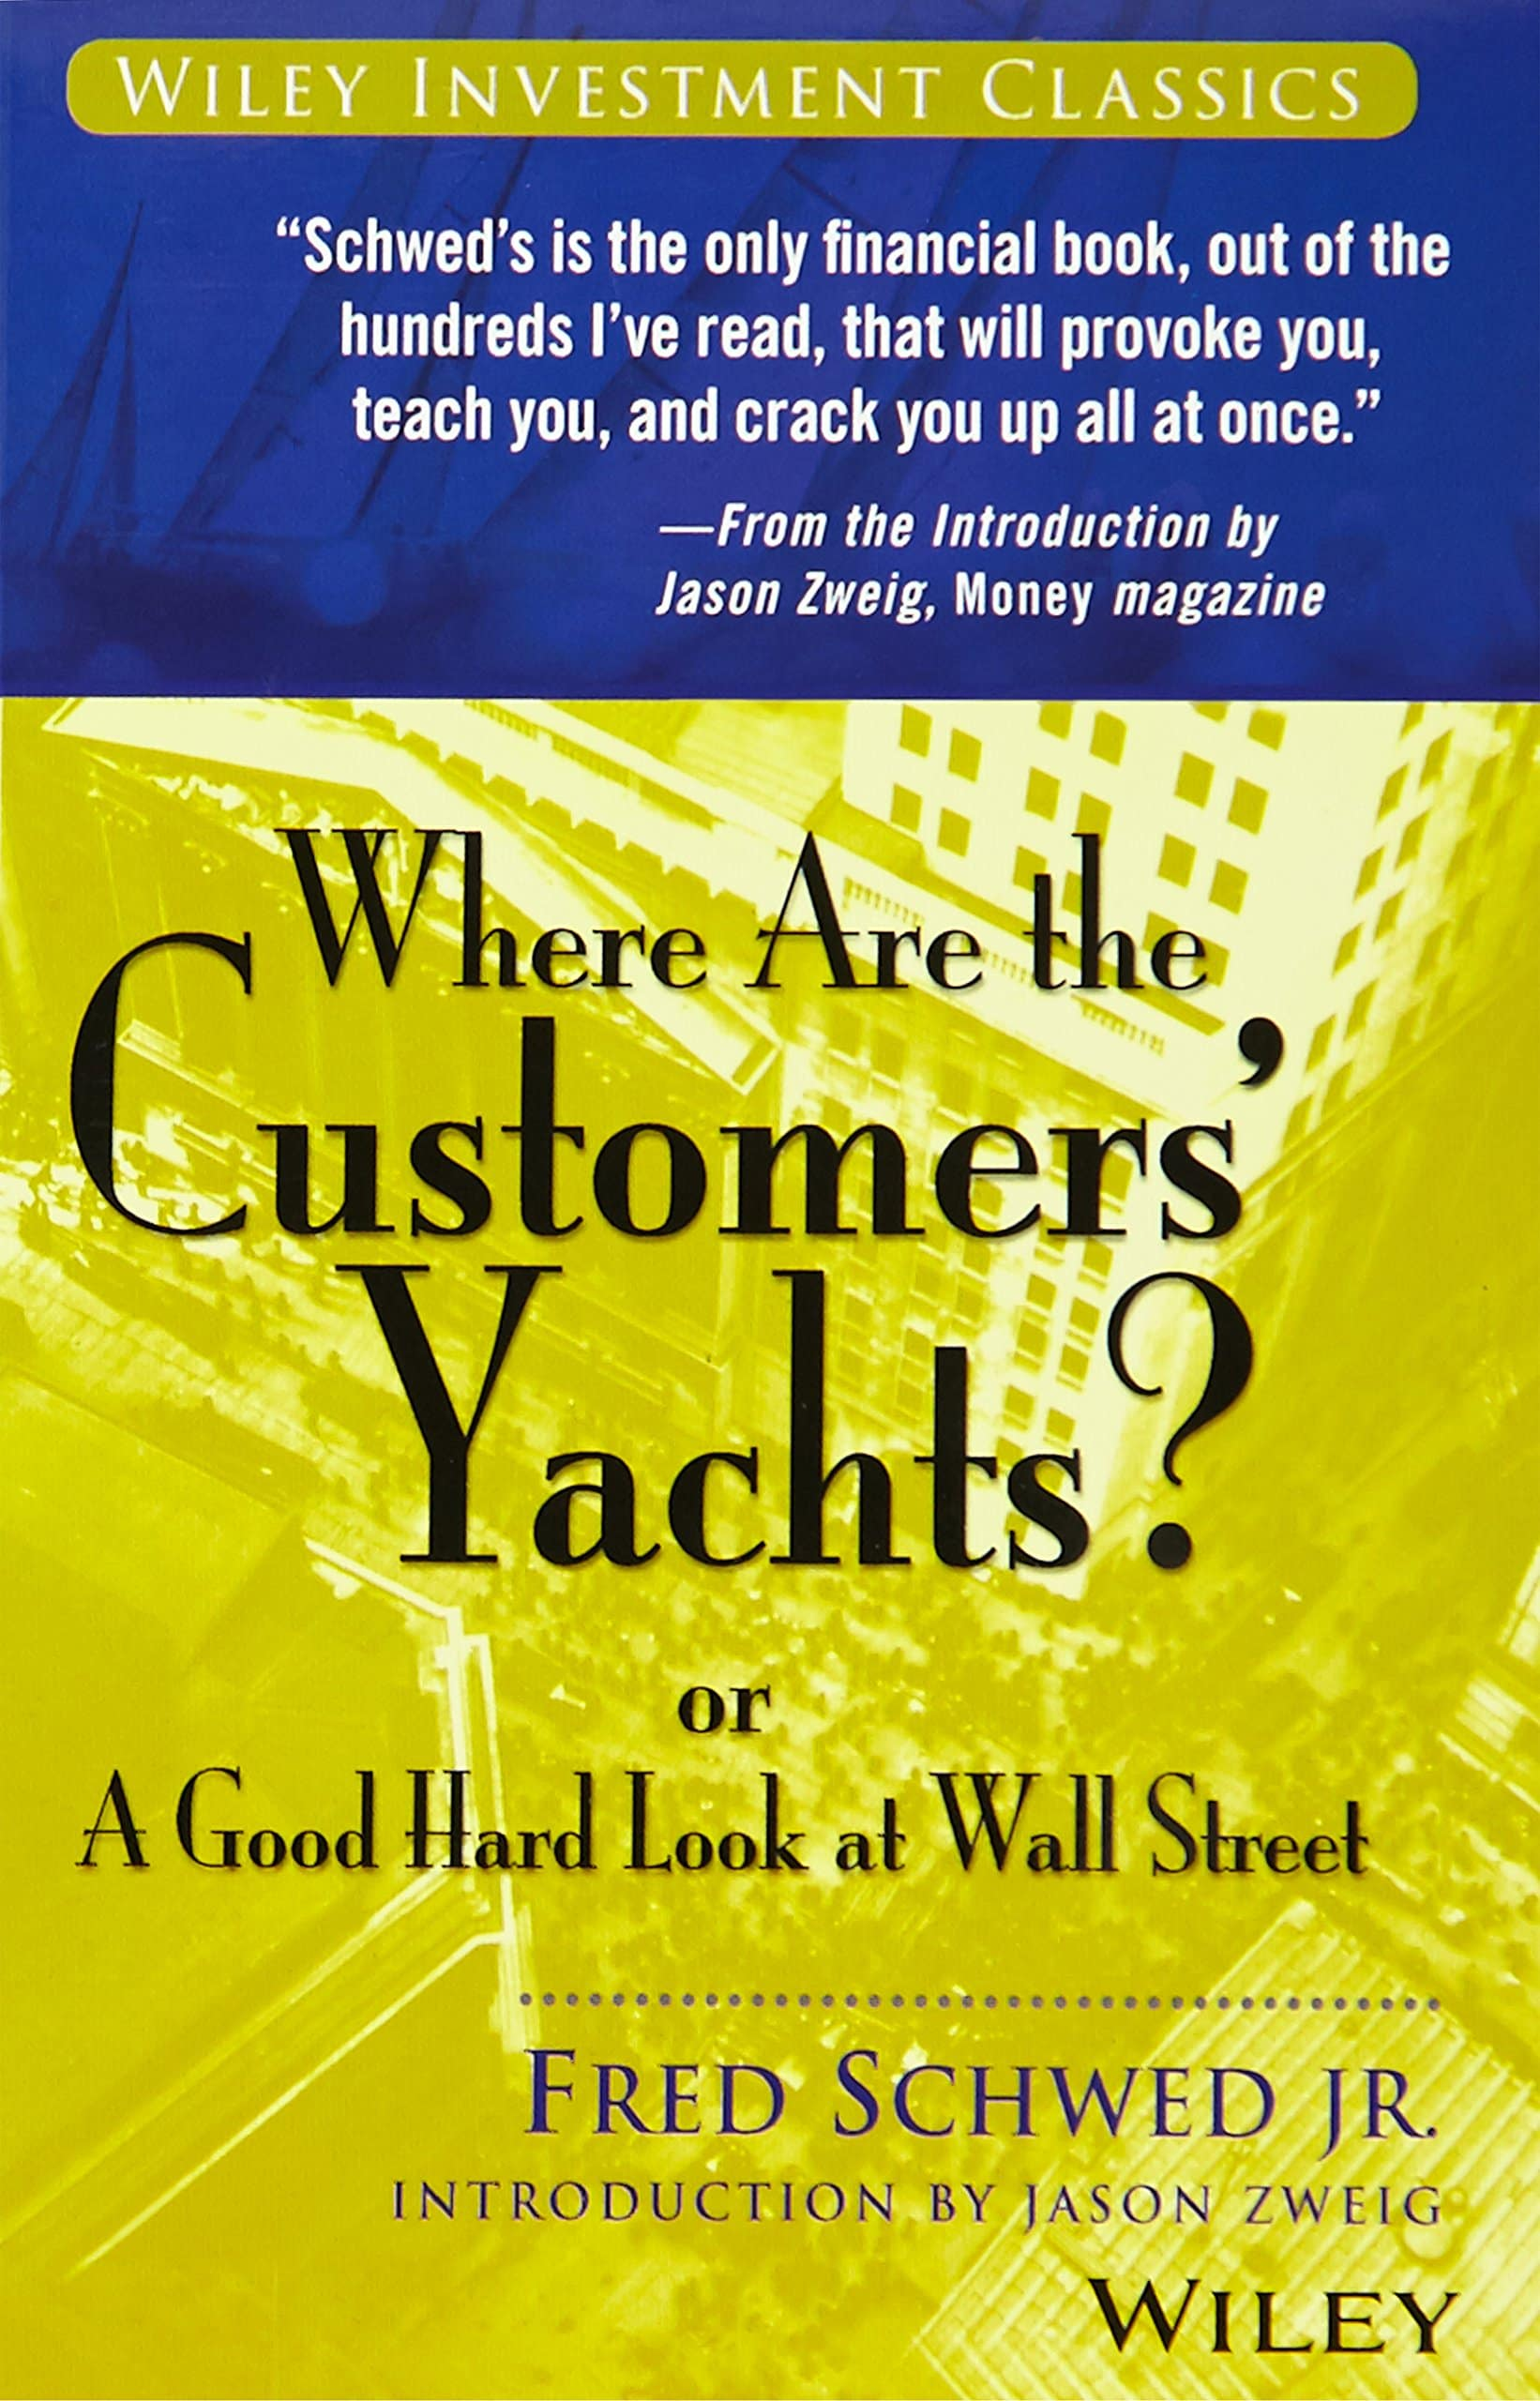 Fred Schwed Jr - Where Are The Customers Yachts